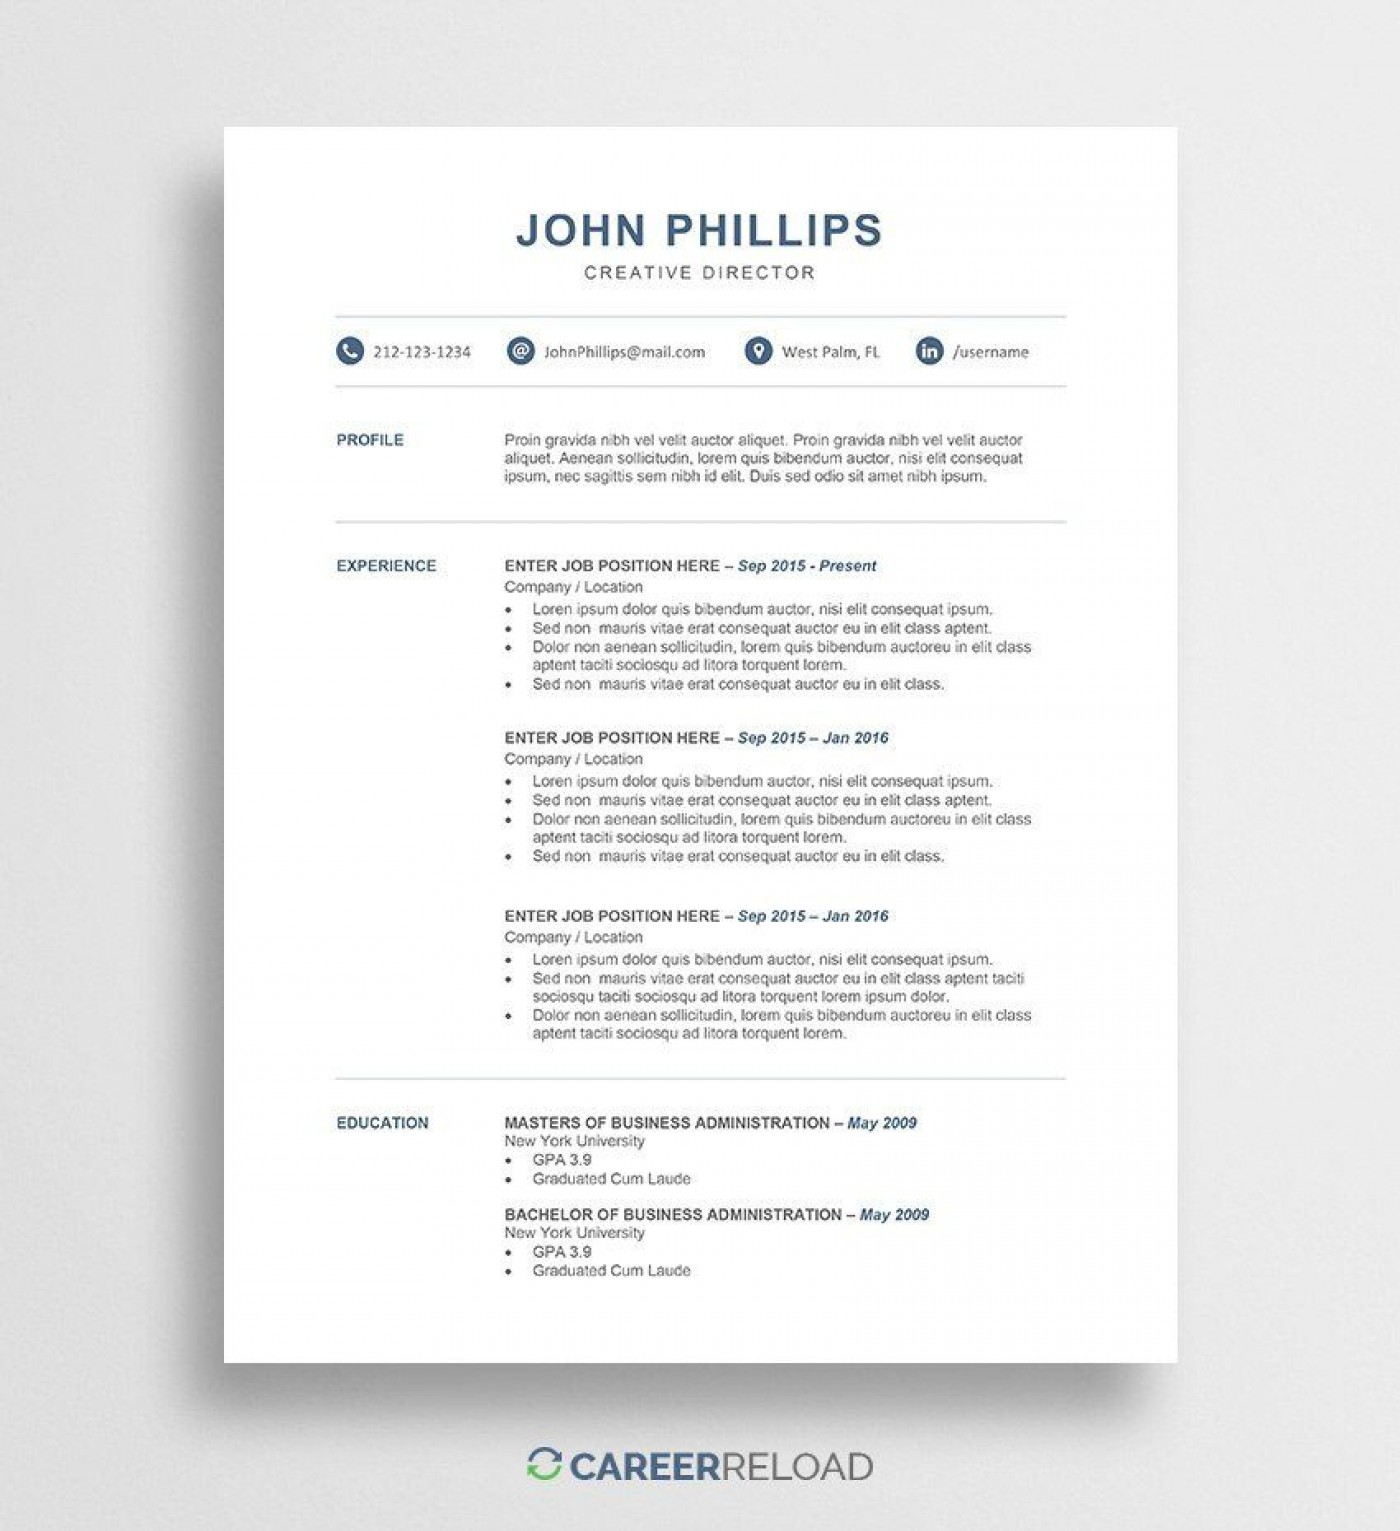 002 Dreaded Word Resume Template Free Image  Microsoft 2010 Download 2019 Modern1400